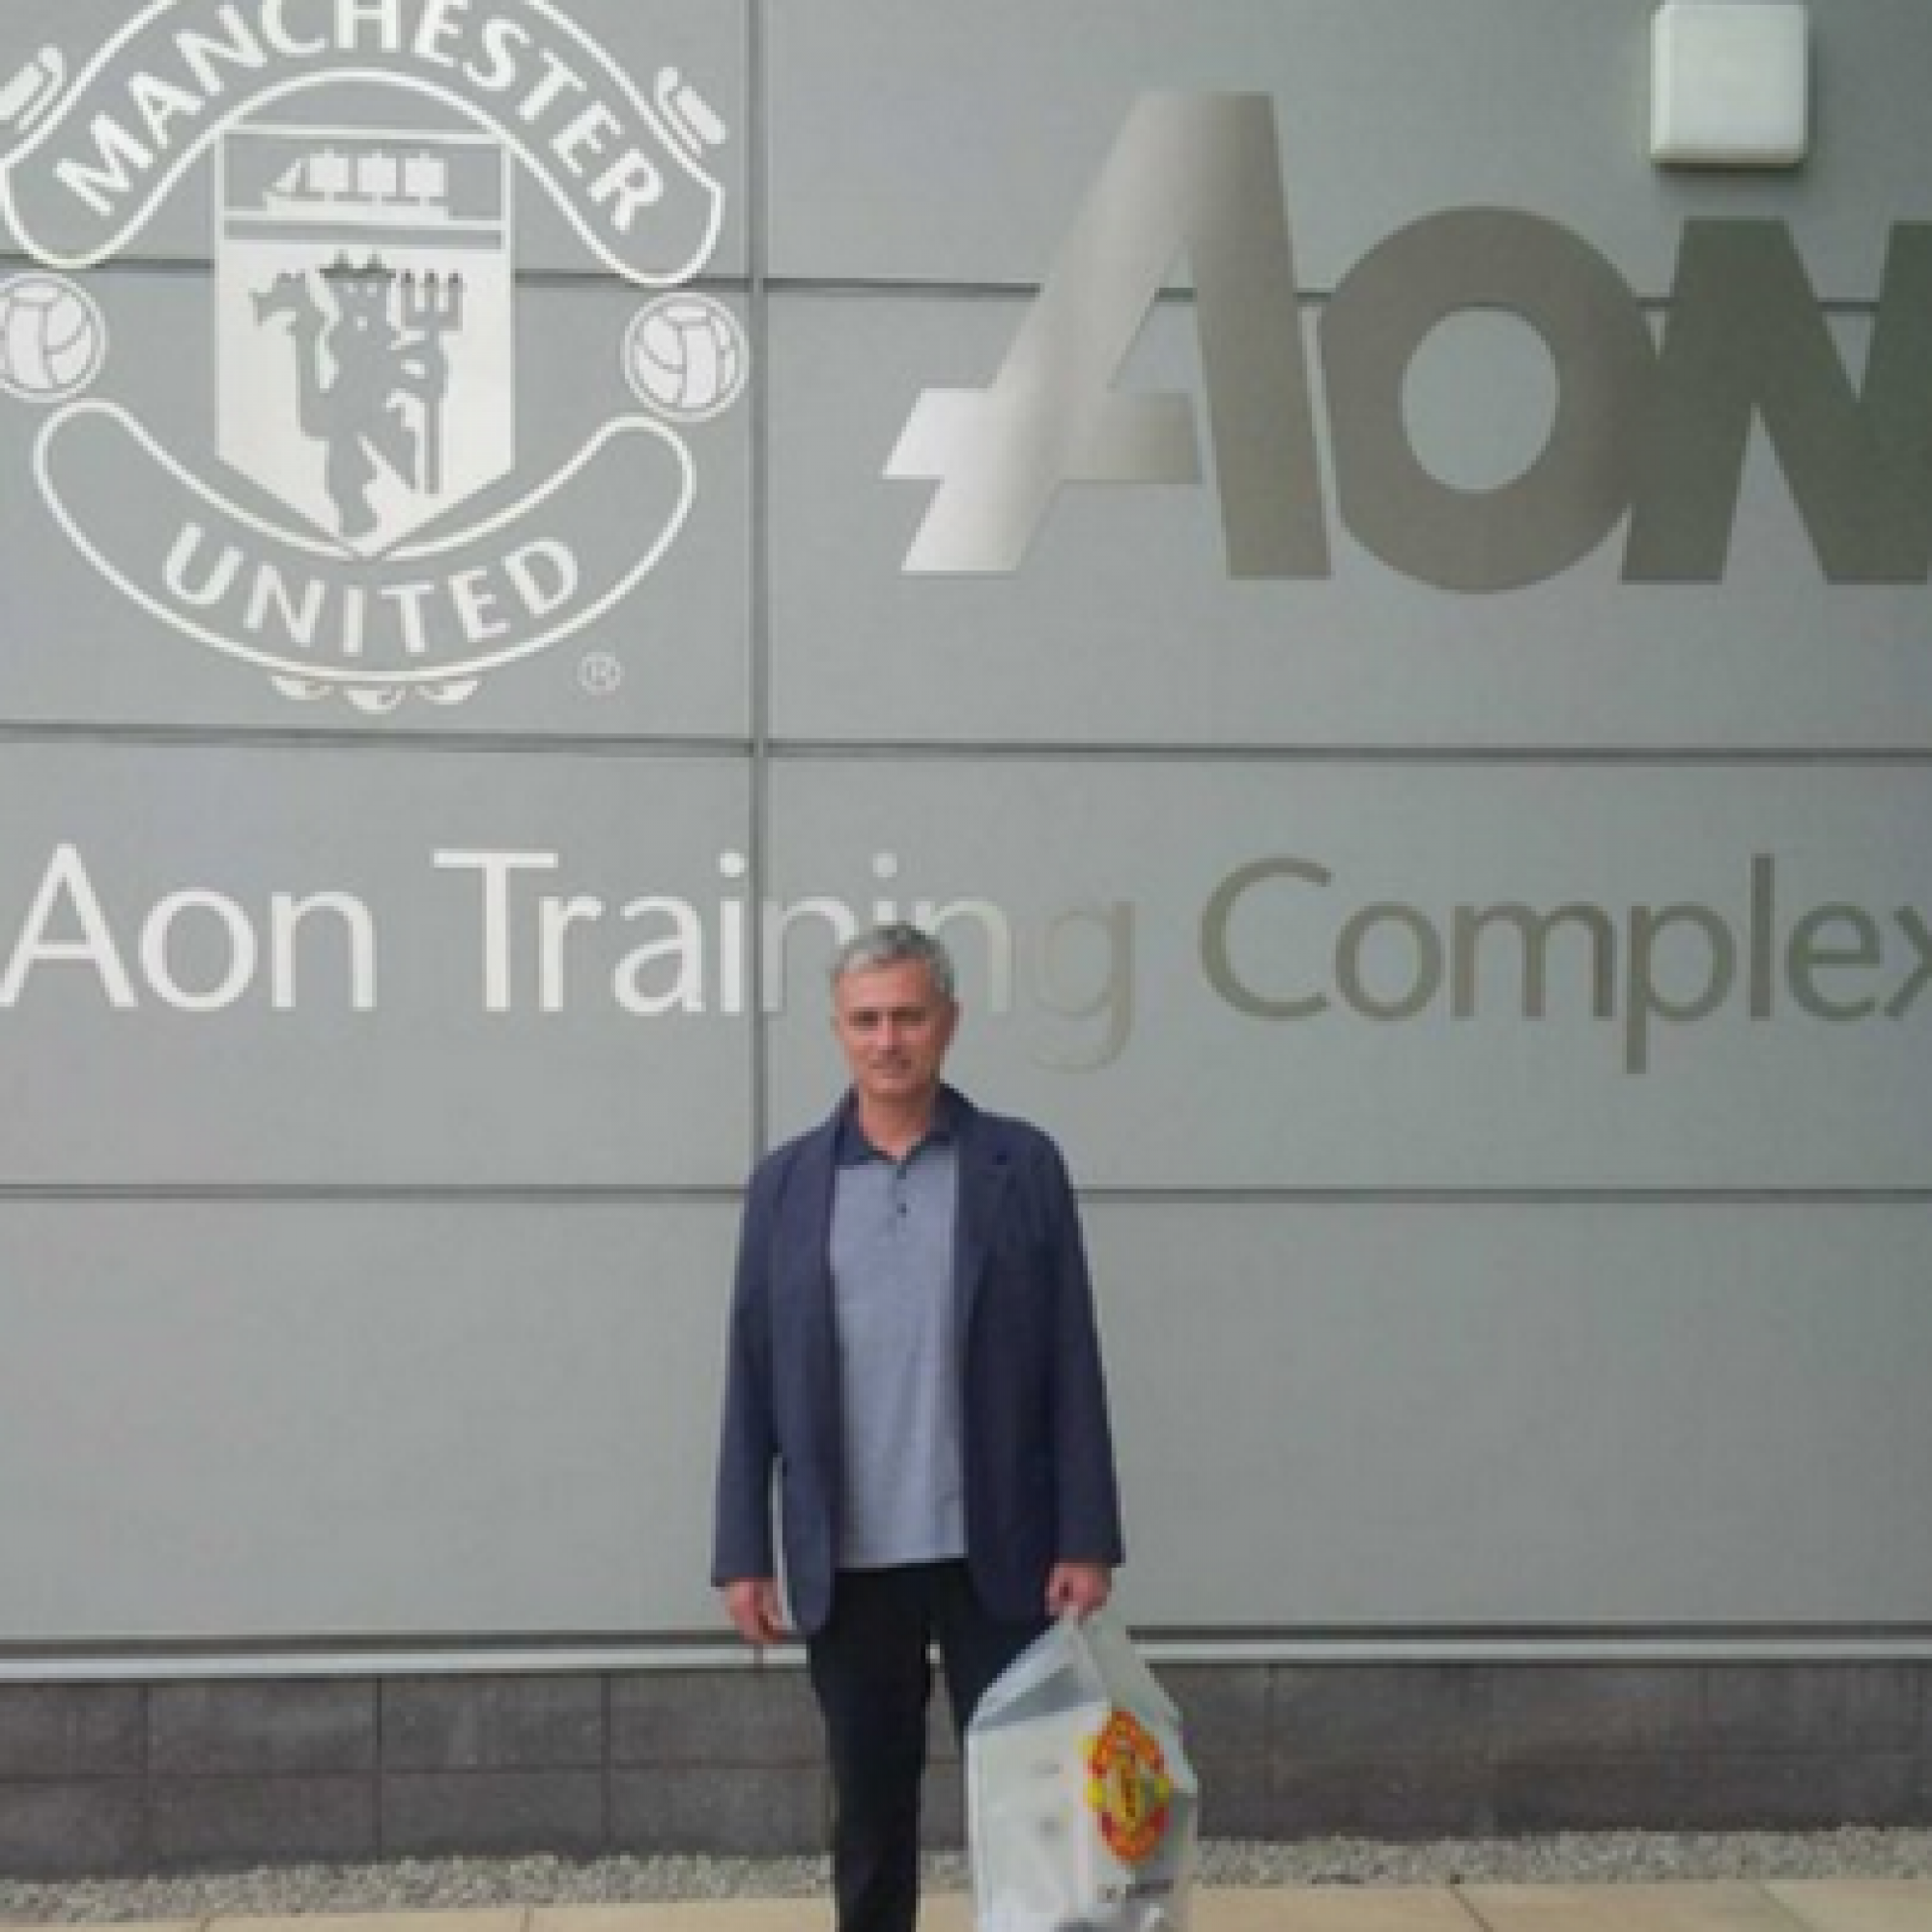 On his first visit to Carrington, Jose Mourinho looked like a regular tourist